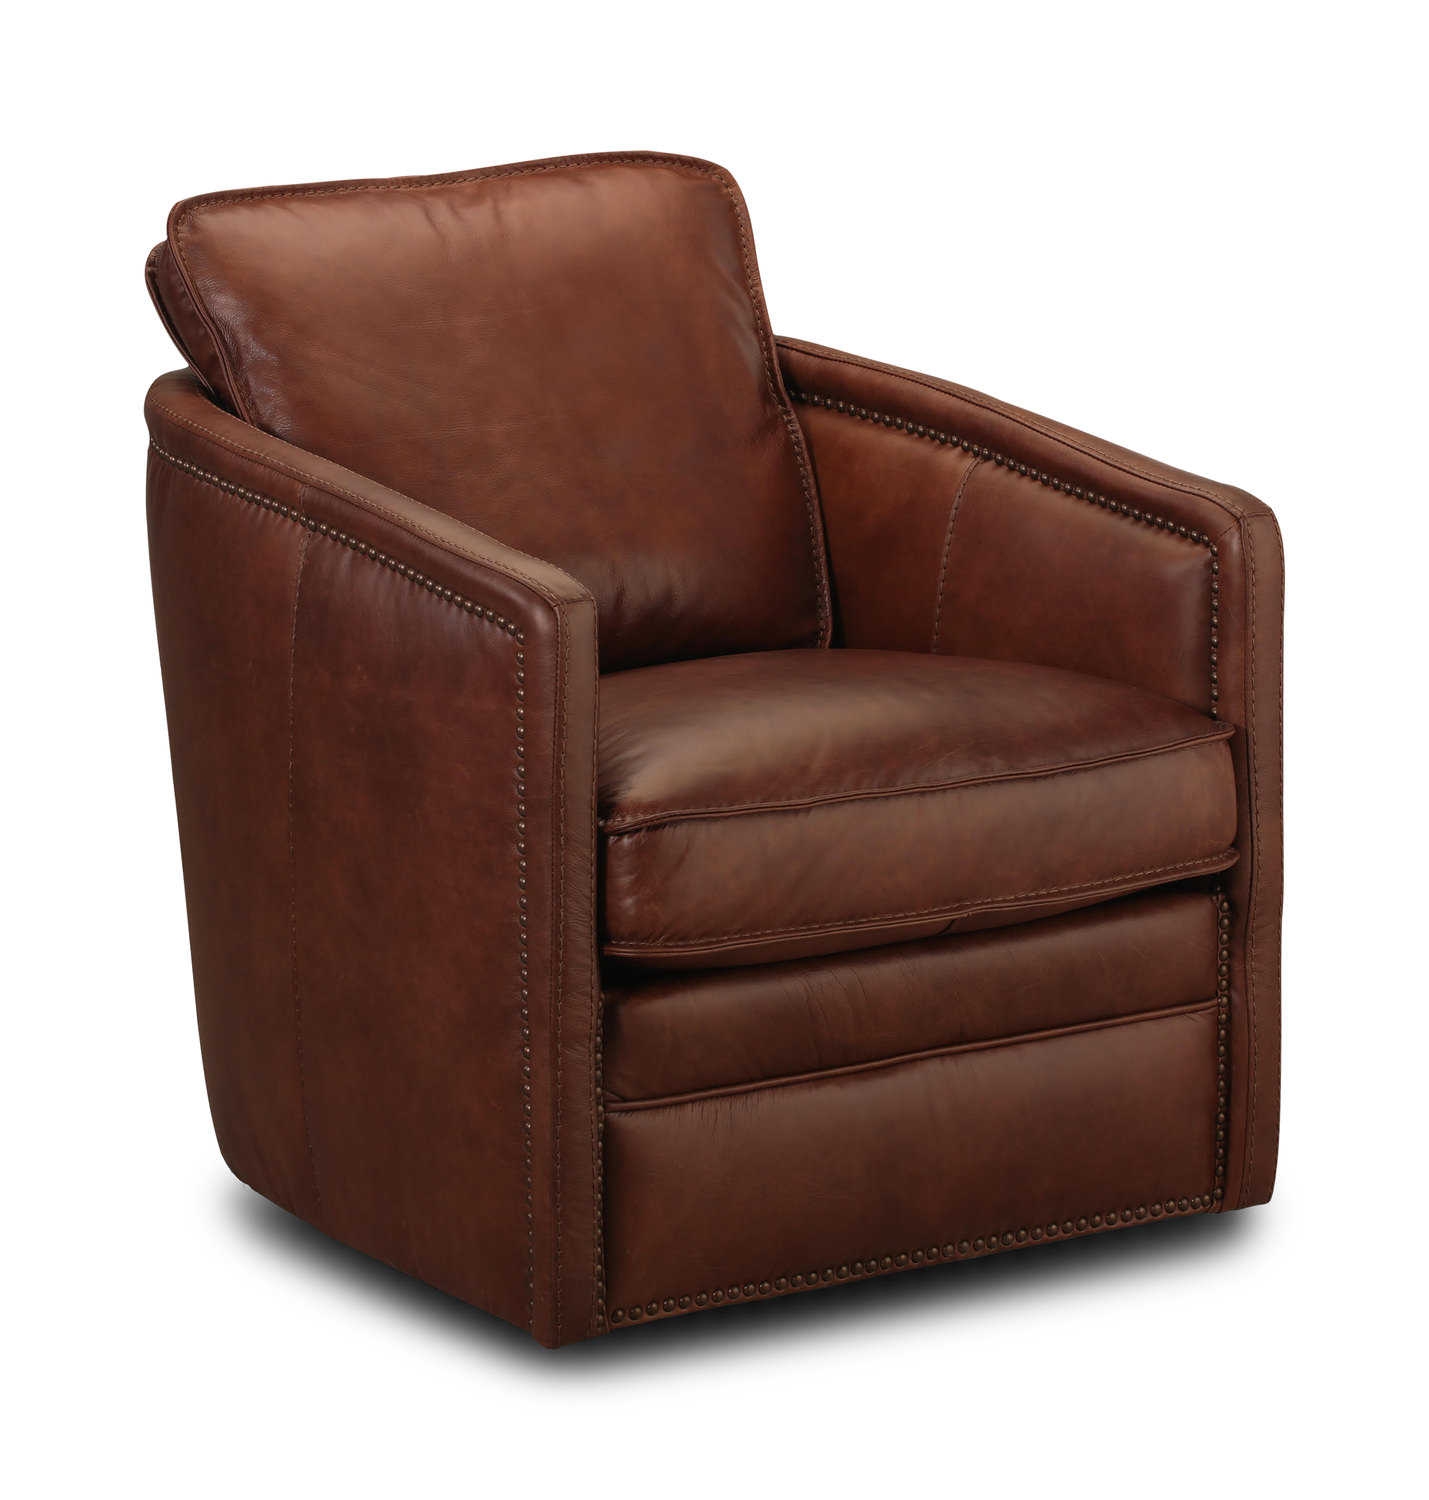 Pivot Leather Swivel Chairthomas Cole | Hom Furniture In Swivel Tobacco Leather Chairs (View 6 of 20)